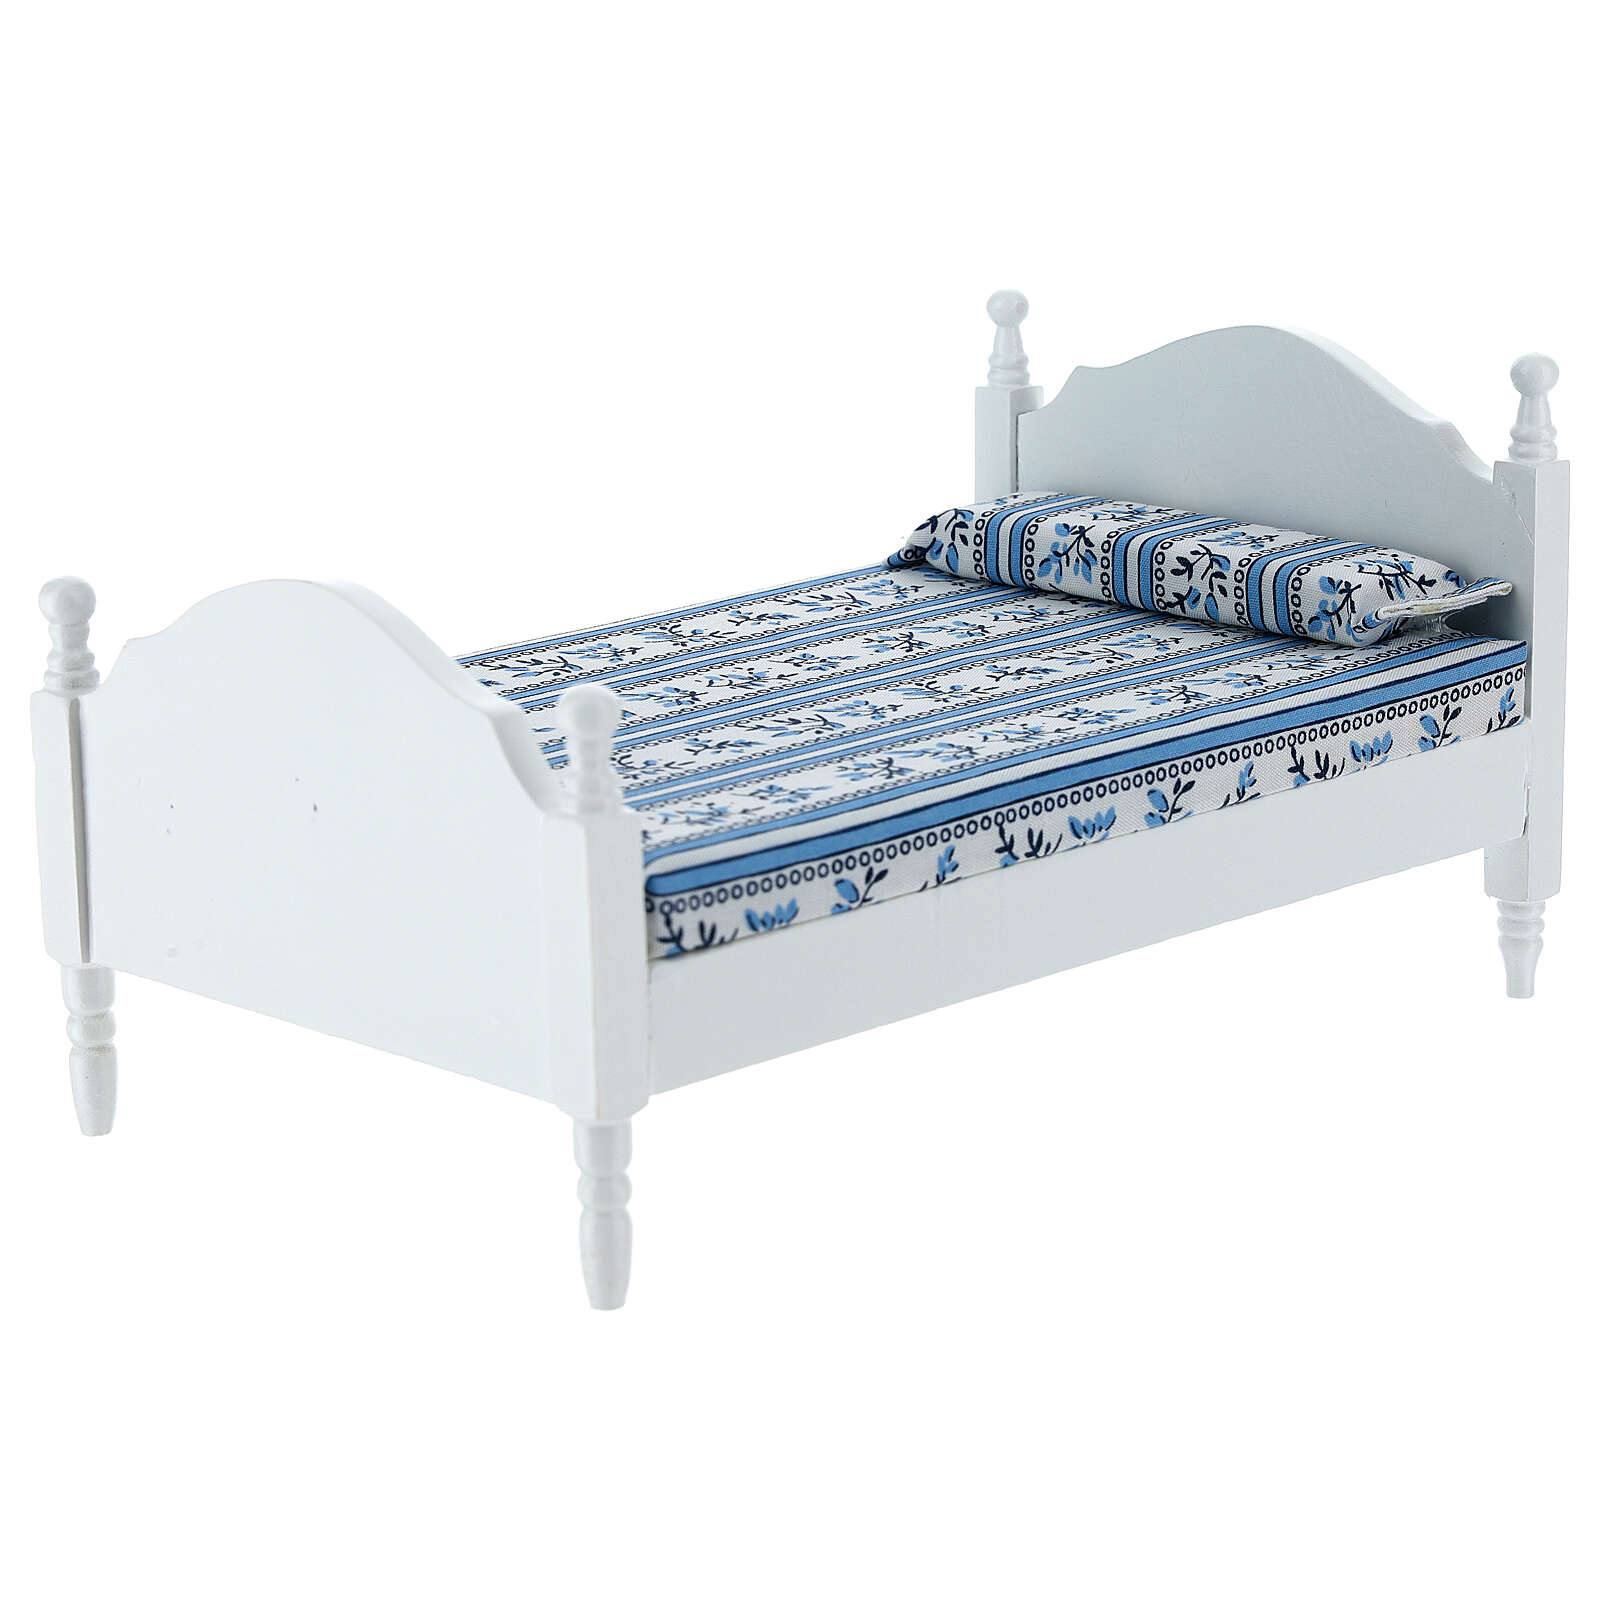 White bed with blanket for Nativity Scene with 16 cm figurines 4